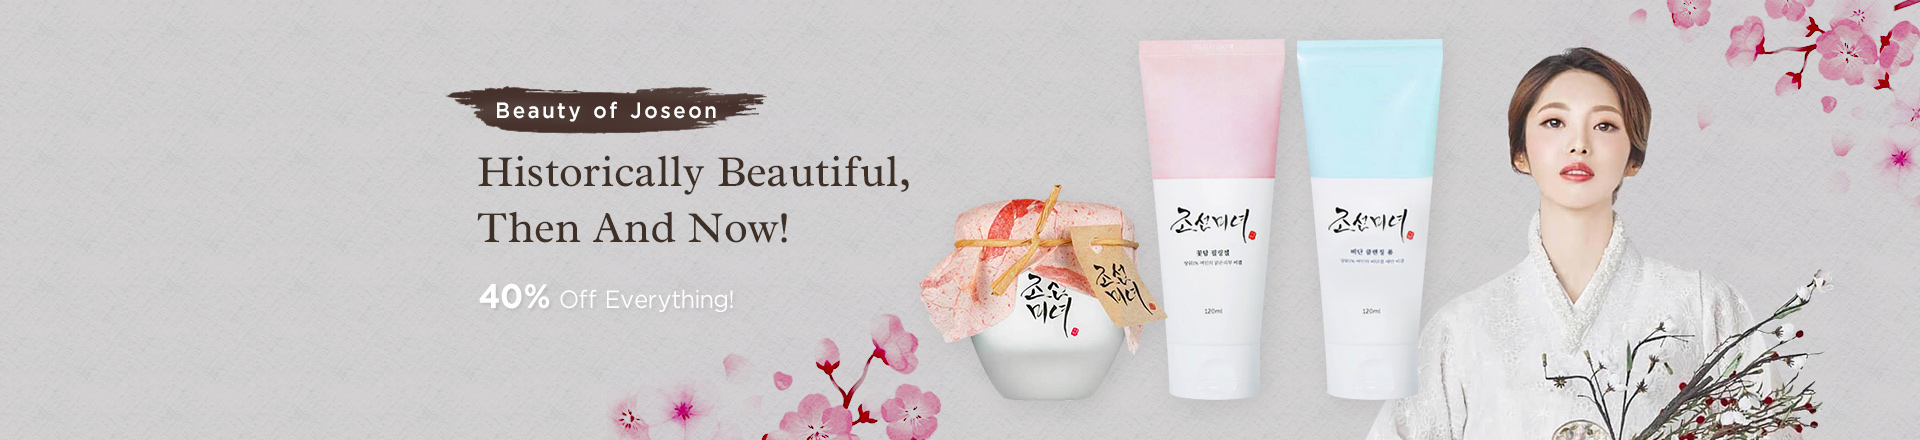 Historically Beautiful, All of Beauty of Joseon 40% OFF!